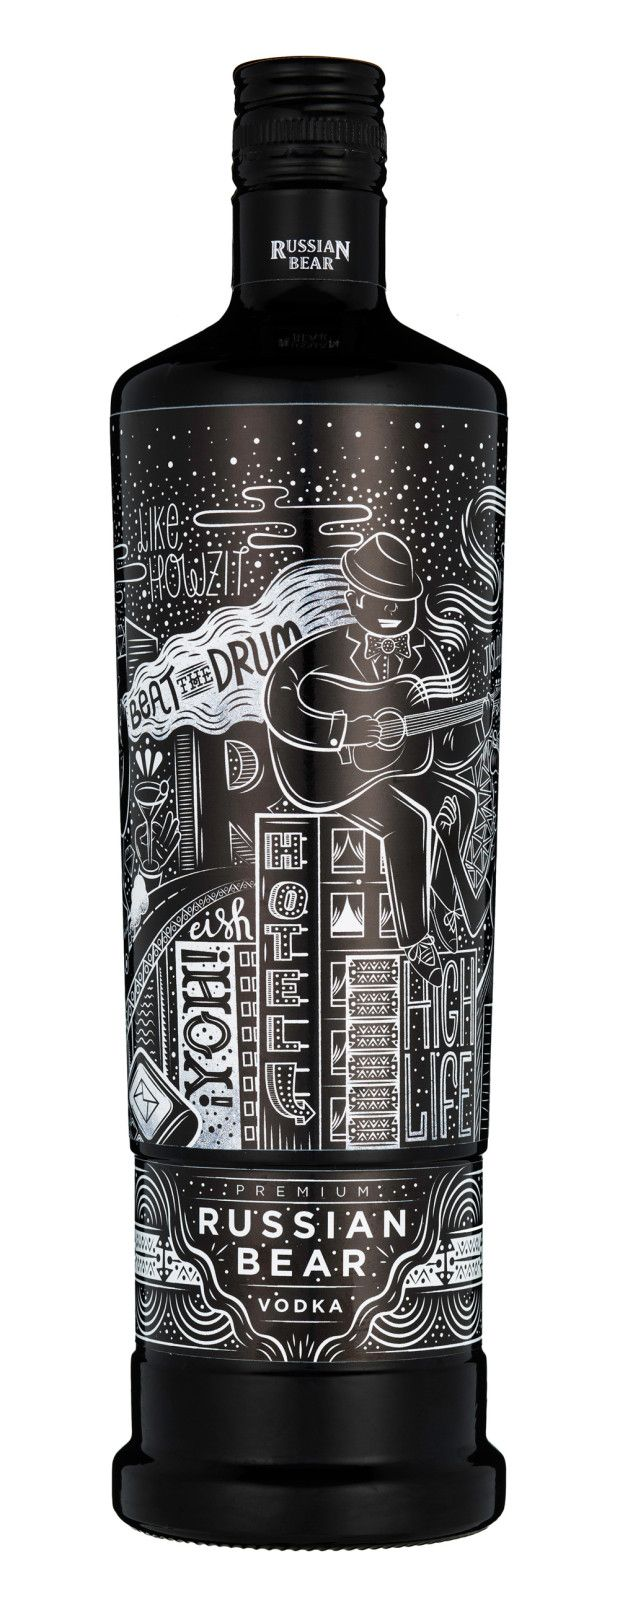 Russian Bear Vodka, #UrbanExpressions Campaign / designed by Hylton Warburton